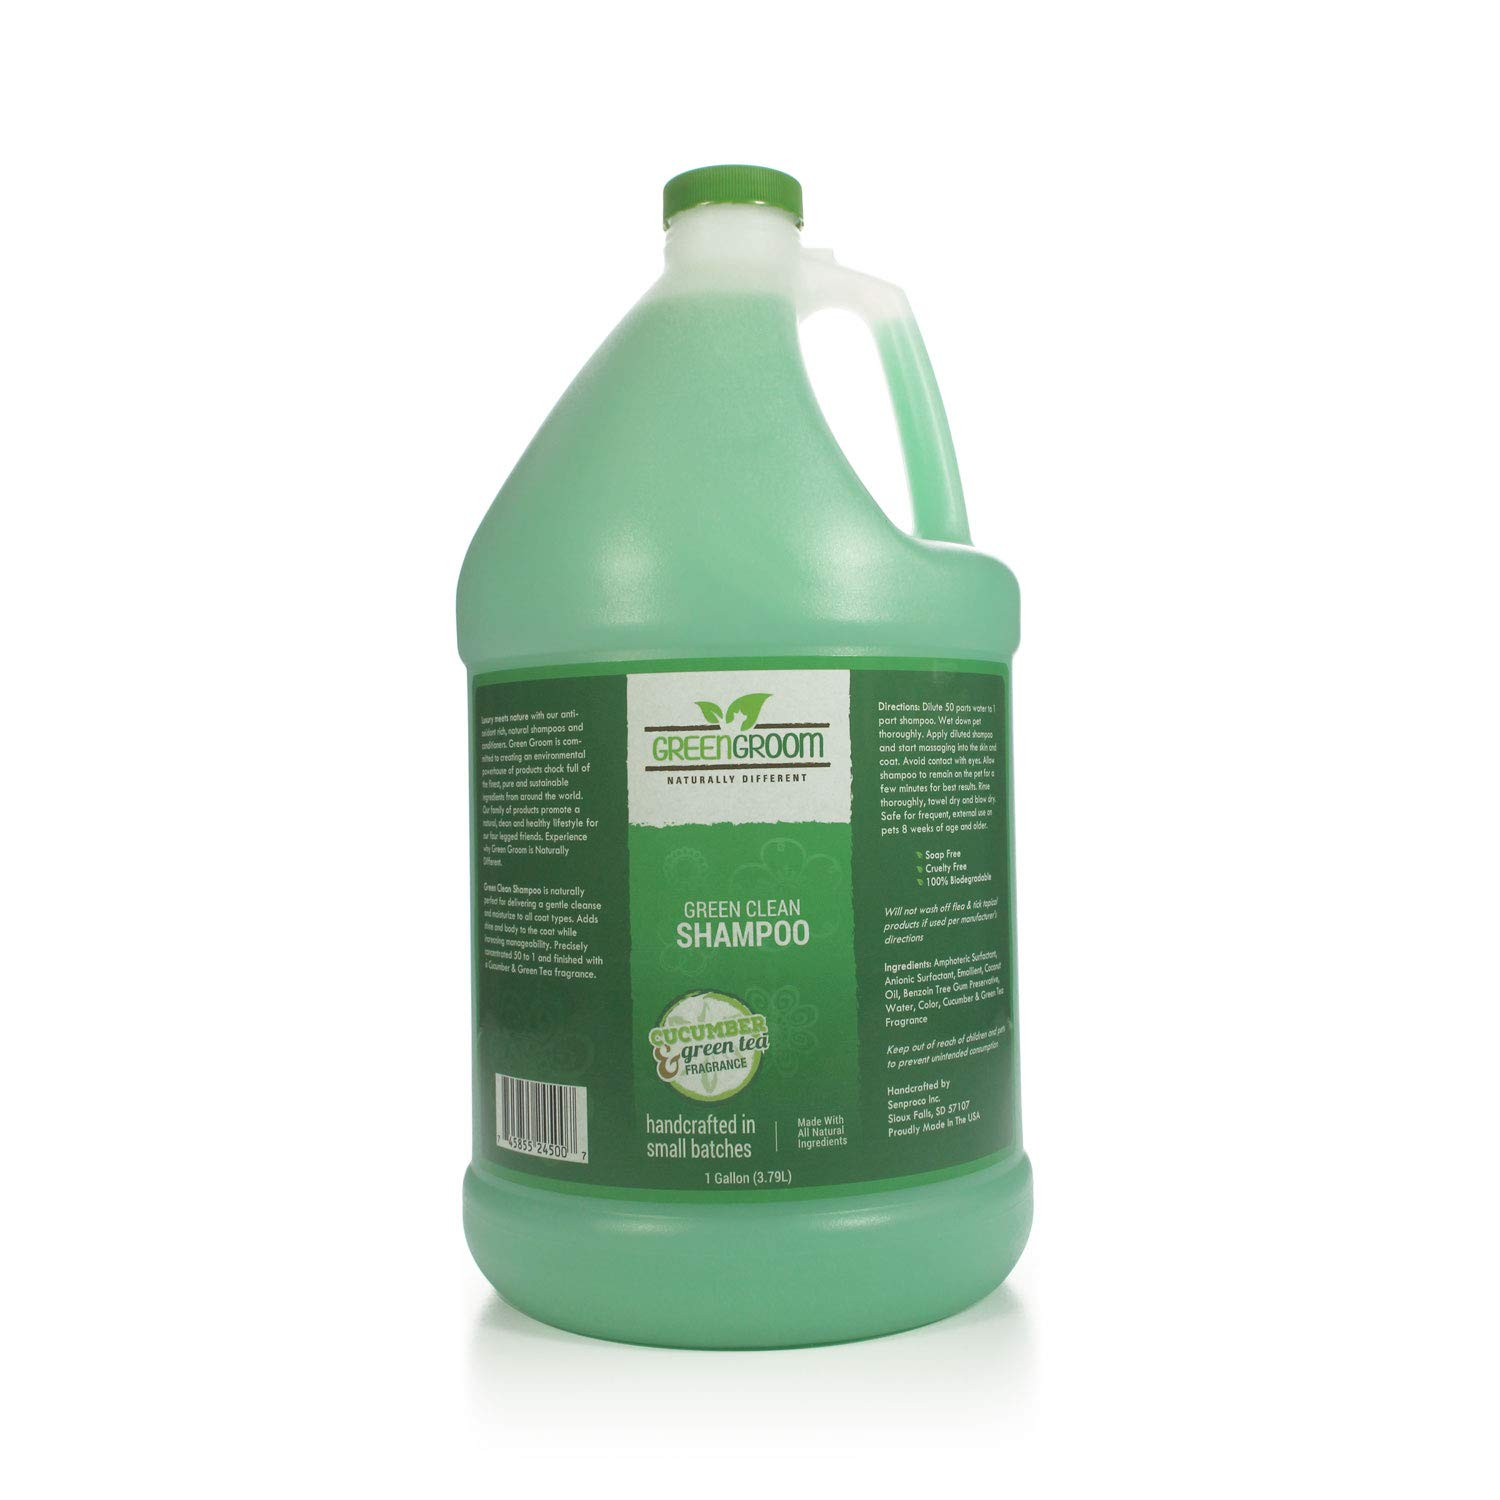 Green Groom Green Clean Dog Shampoo, 1 Gallon - All Natural Ingredients, 50:1 Concentration, Professional Grade Grooming Shampoo